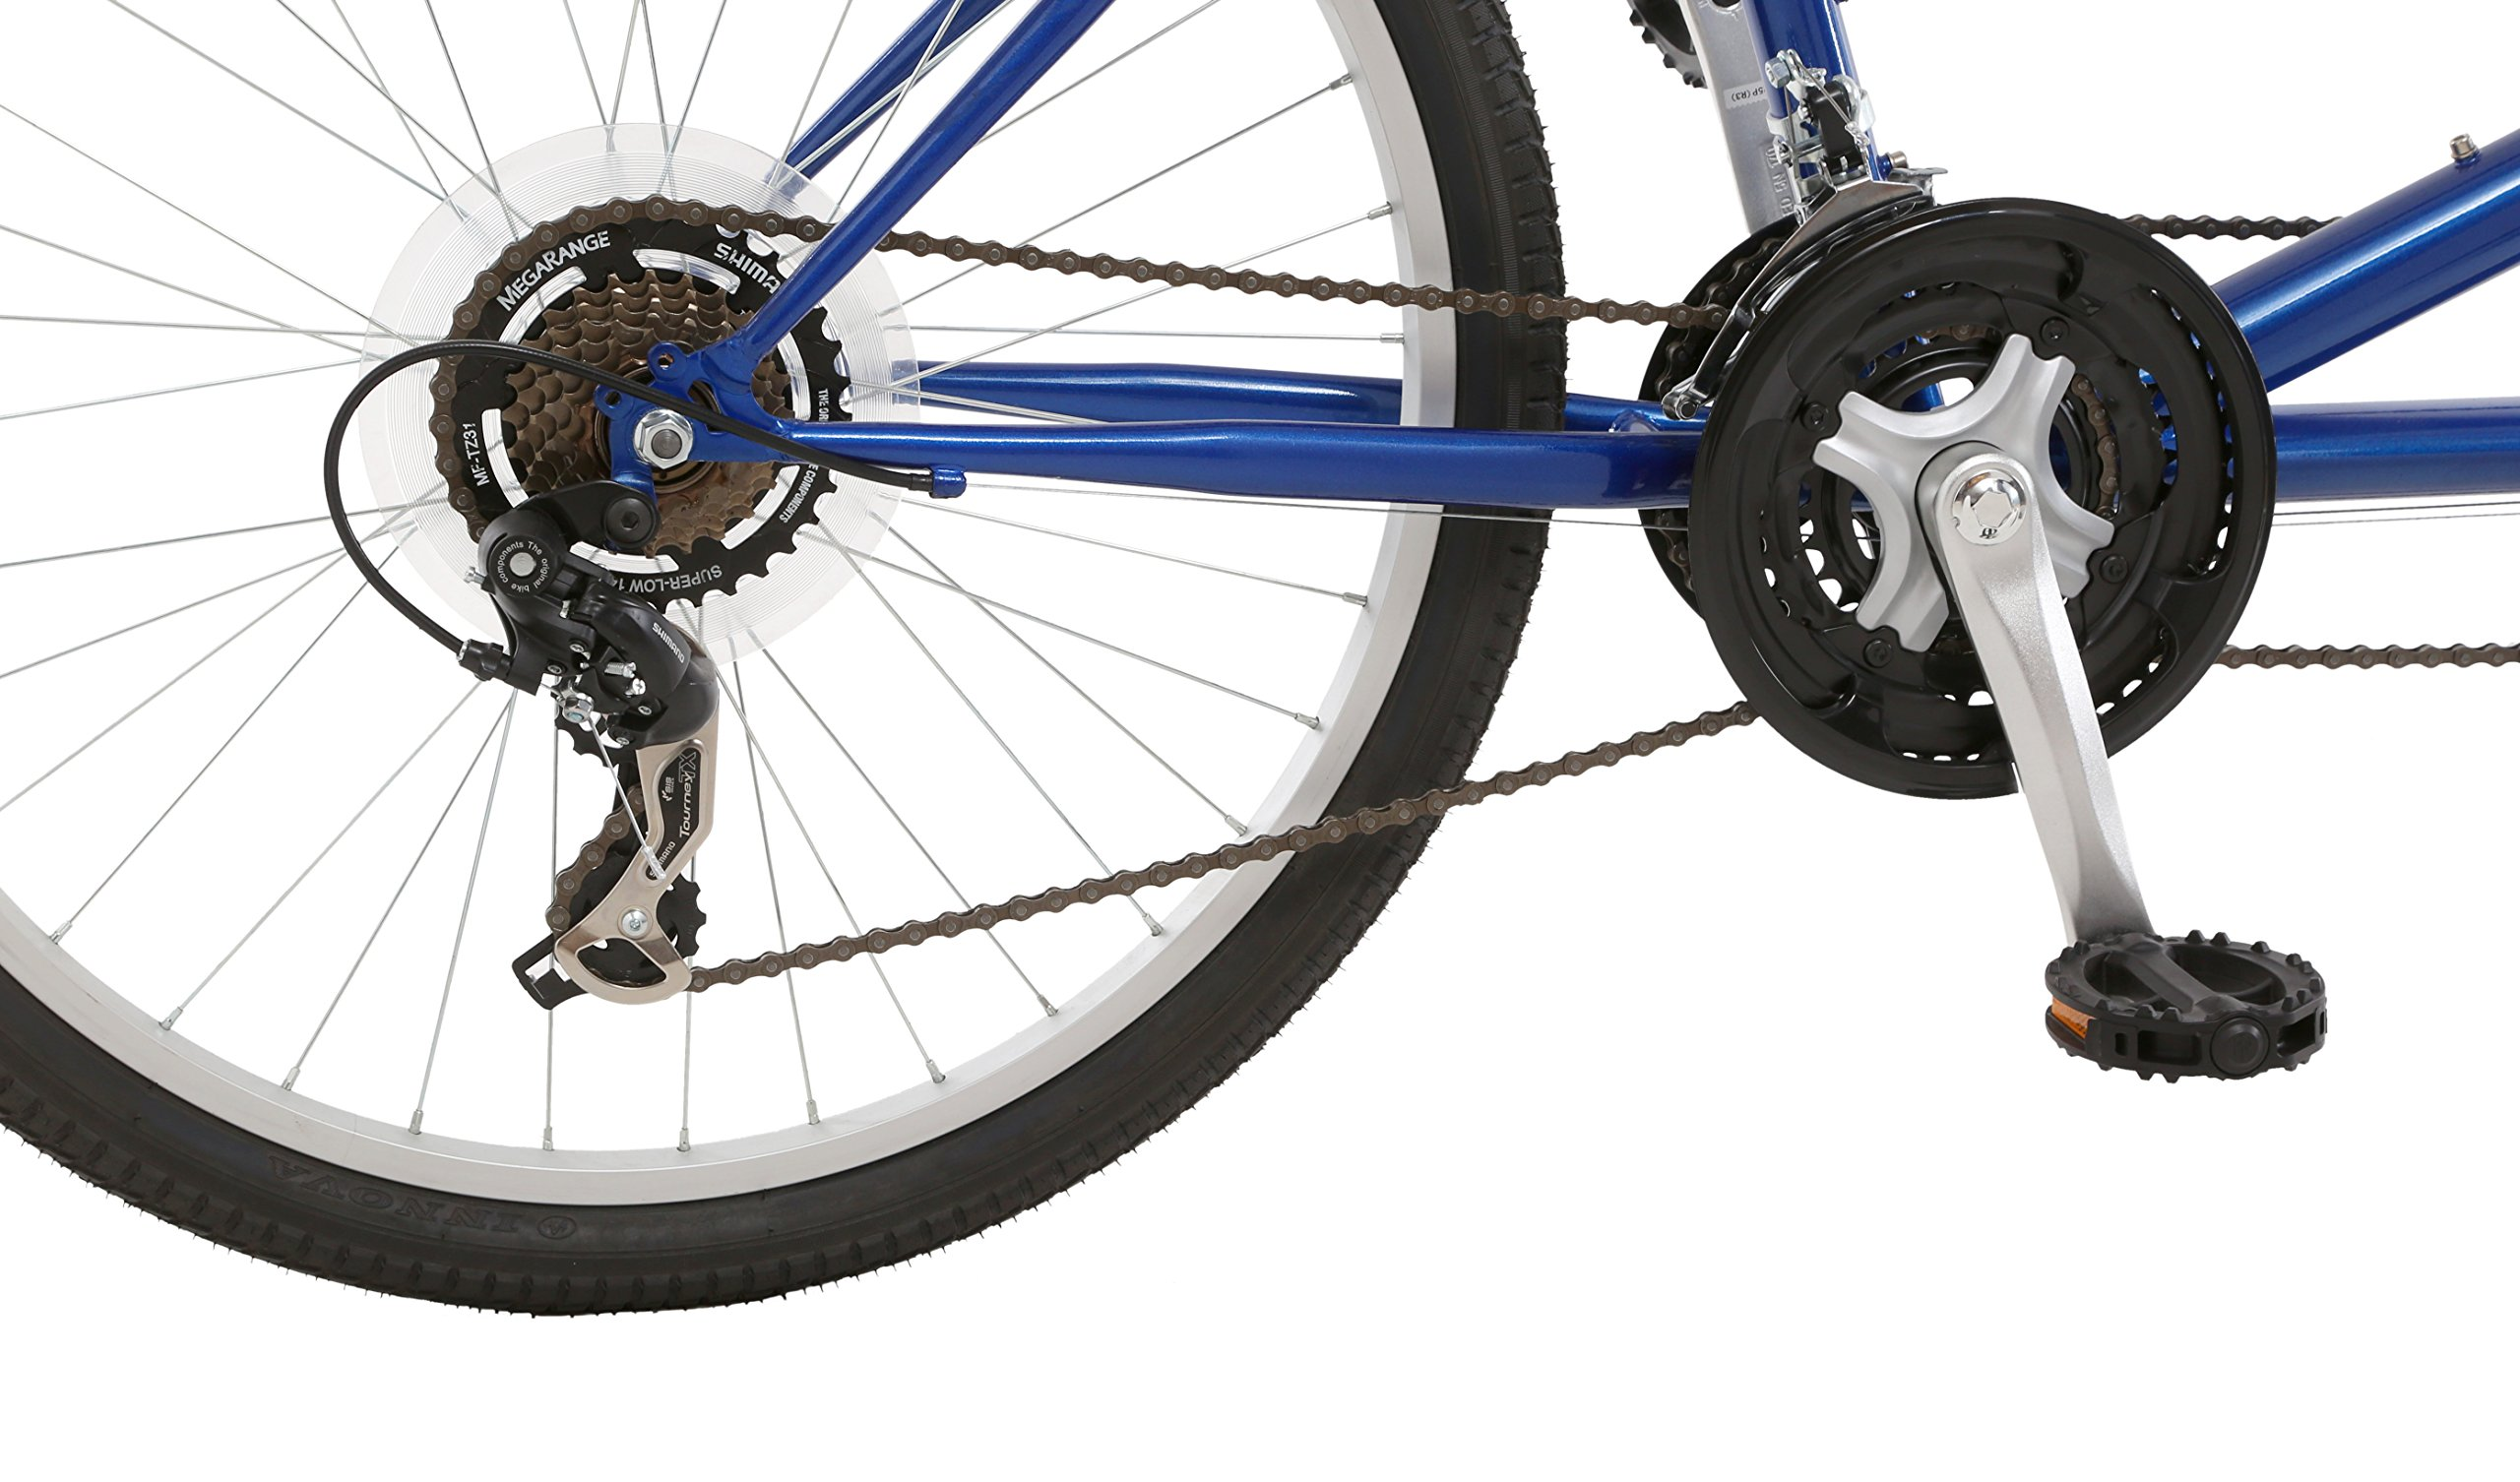 Pacific Dualie Tandem Bicycle w/ 26inch Wheels,Blue, One Size by Pacific (Image #3)